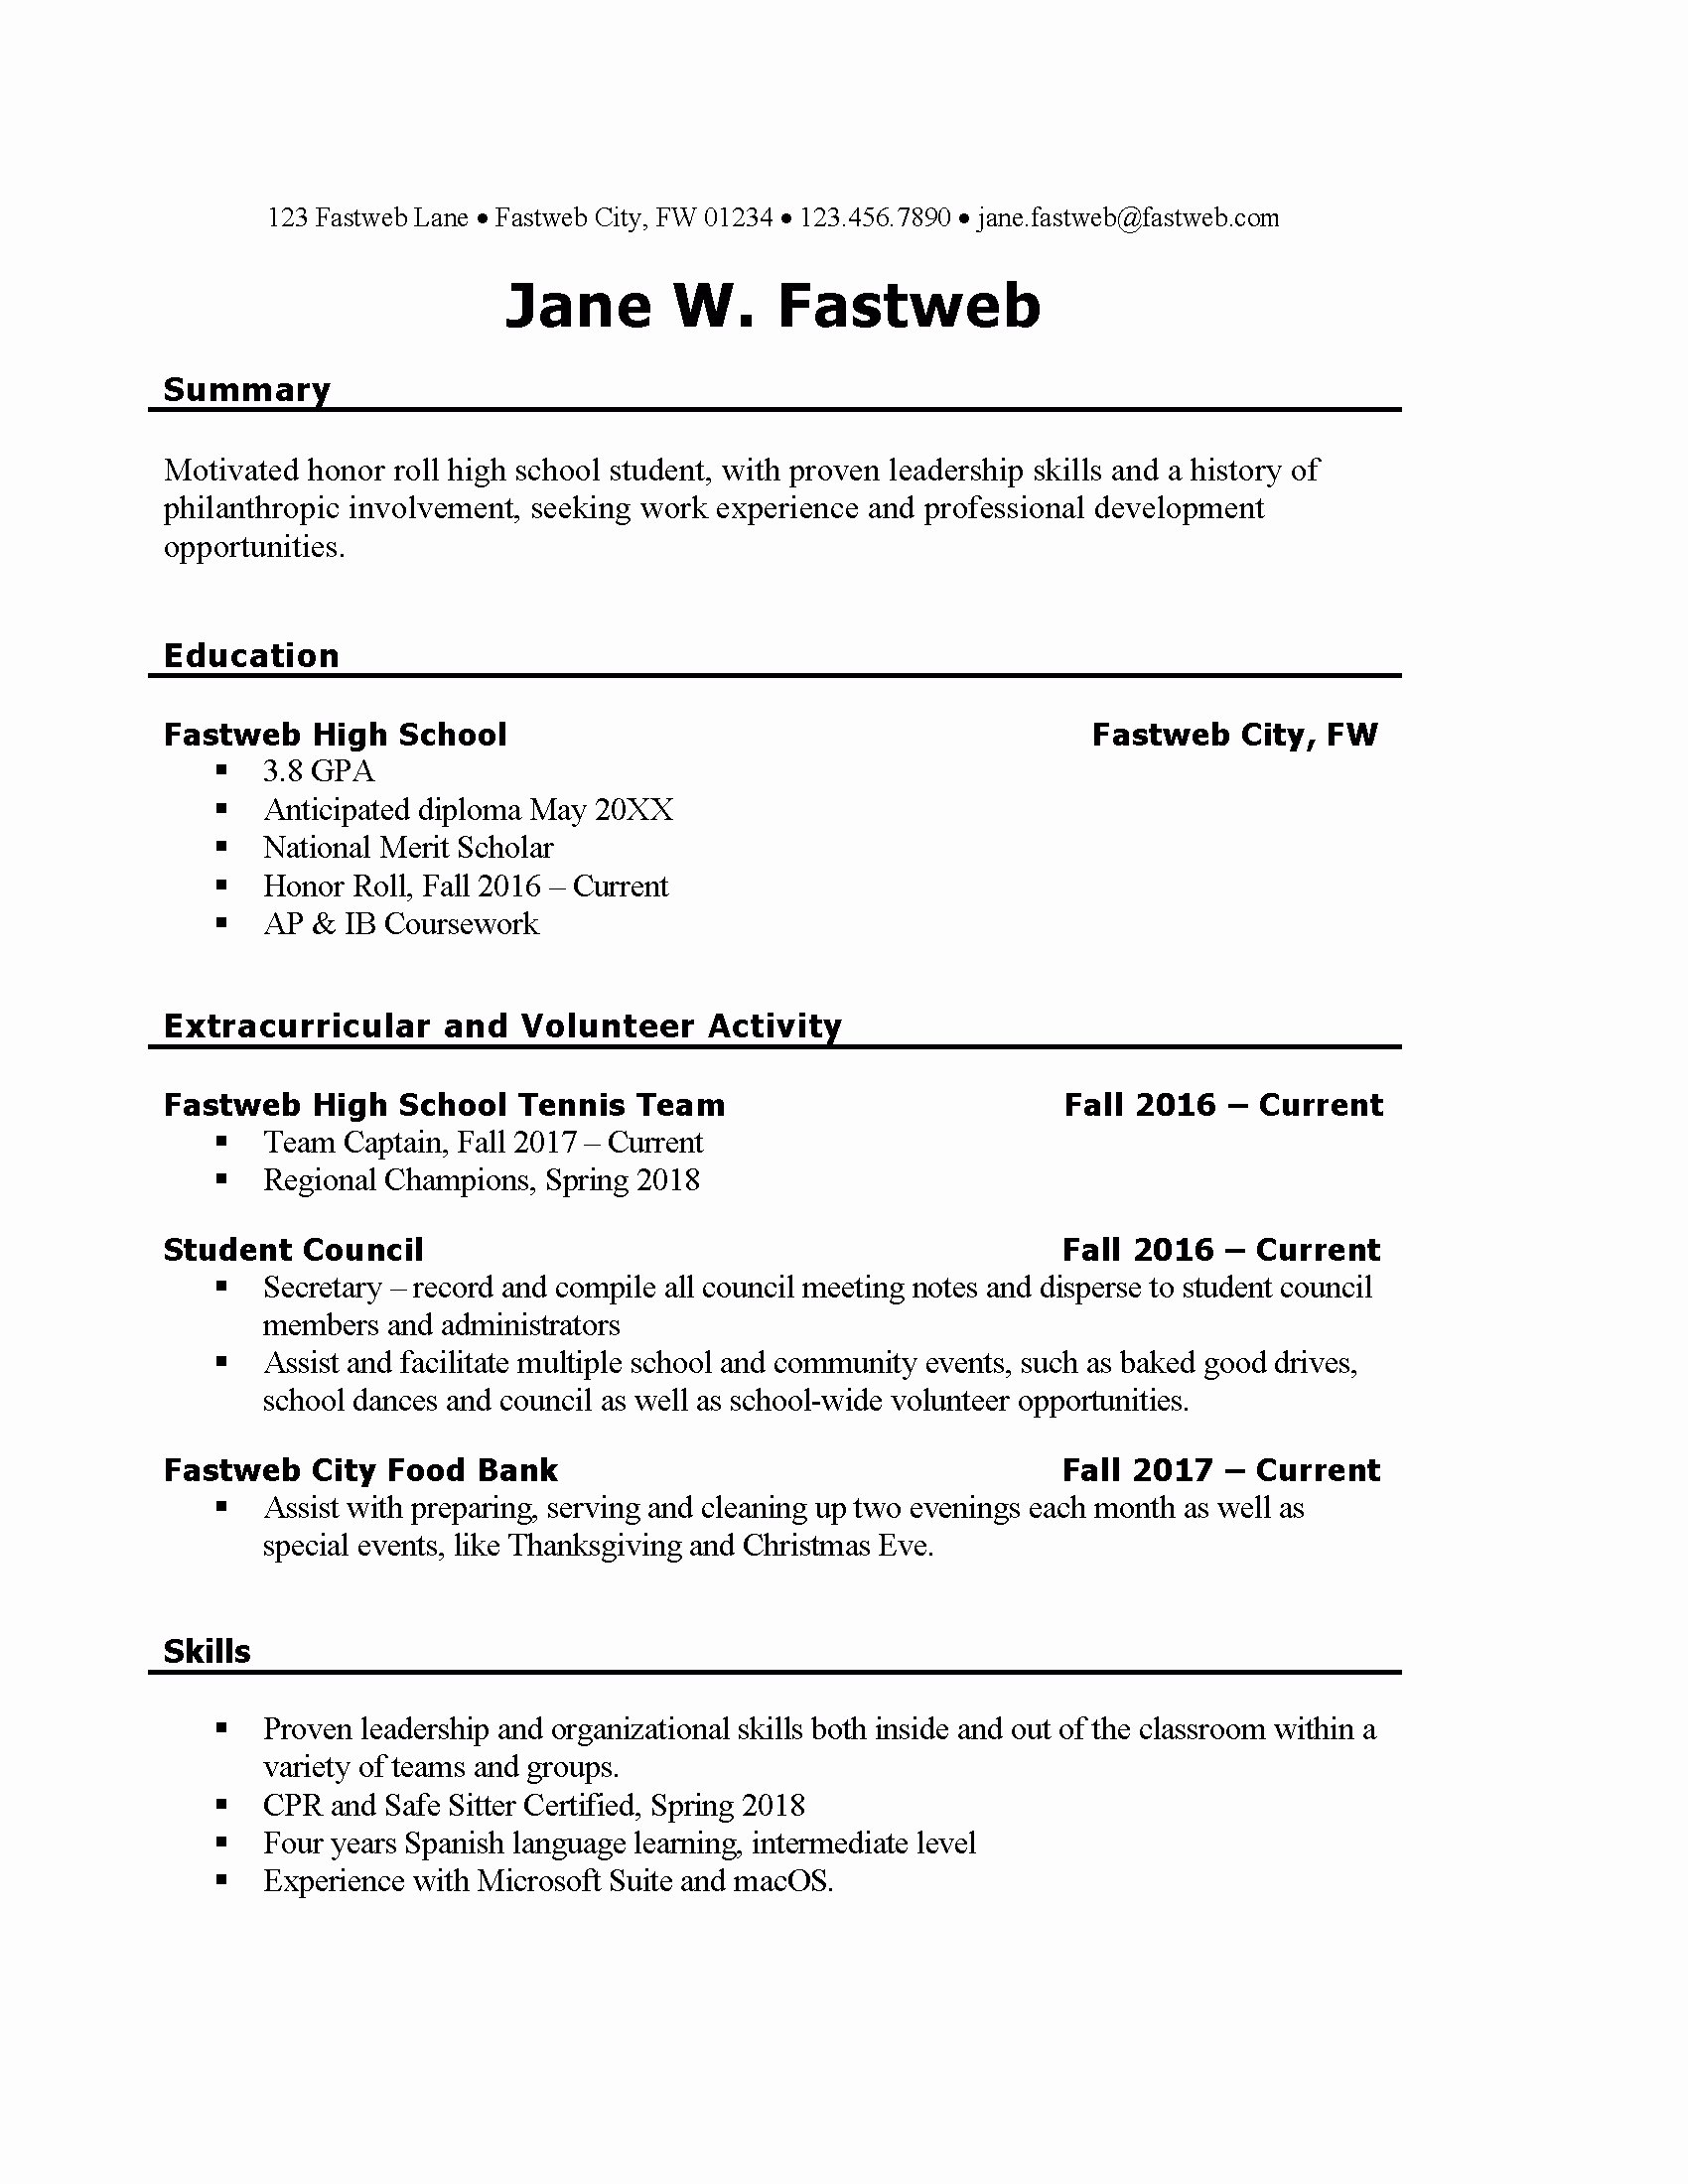 First Time Job Resume Elegant Student Job Resume Examples